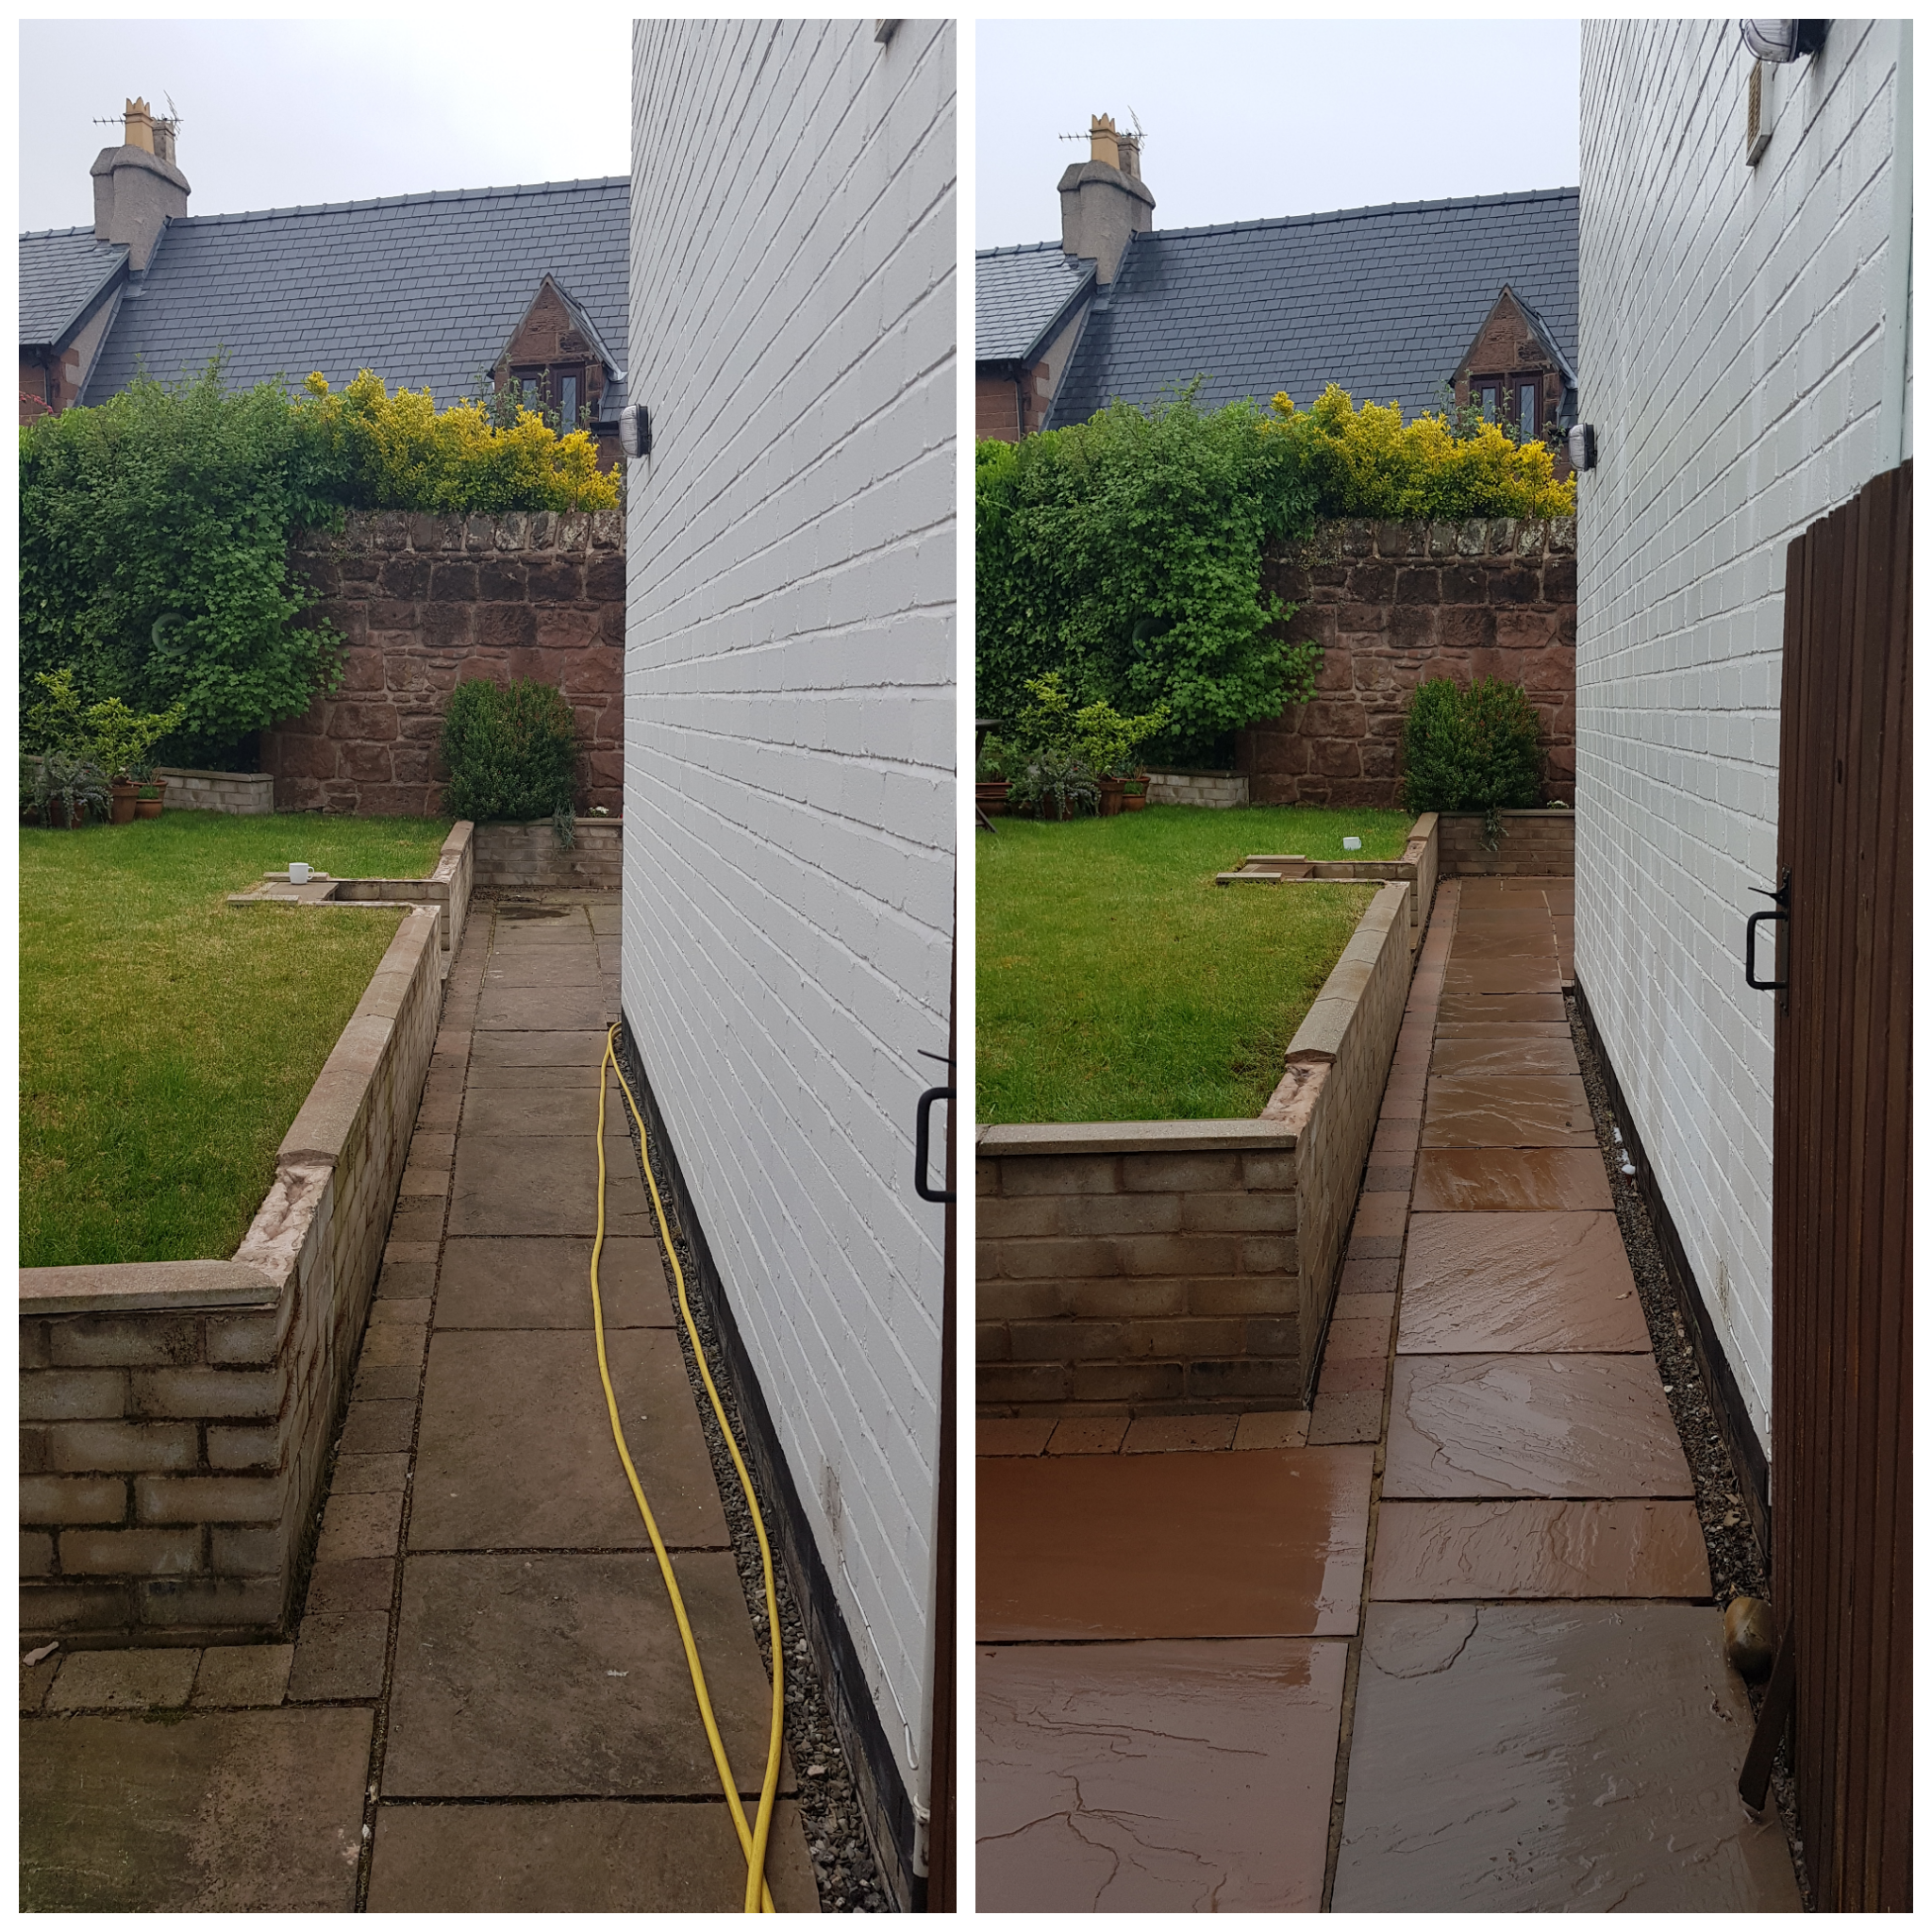 PicsArt_05-25-08.09.10 Indian Sandstone Driveway, Patio & Path Cleaning - Little Neston, Cheshire